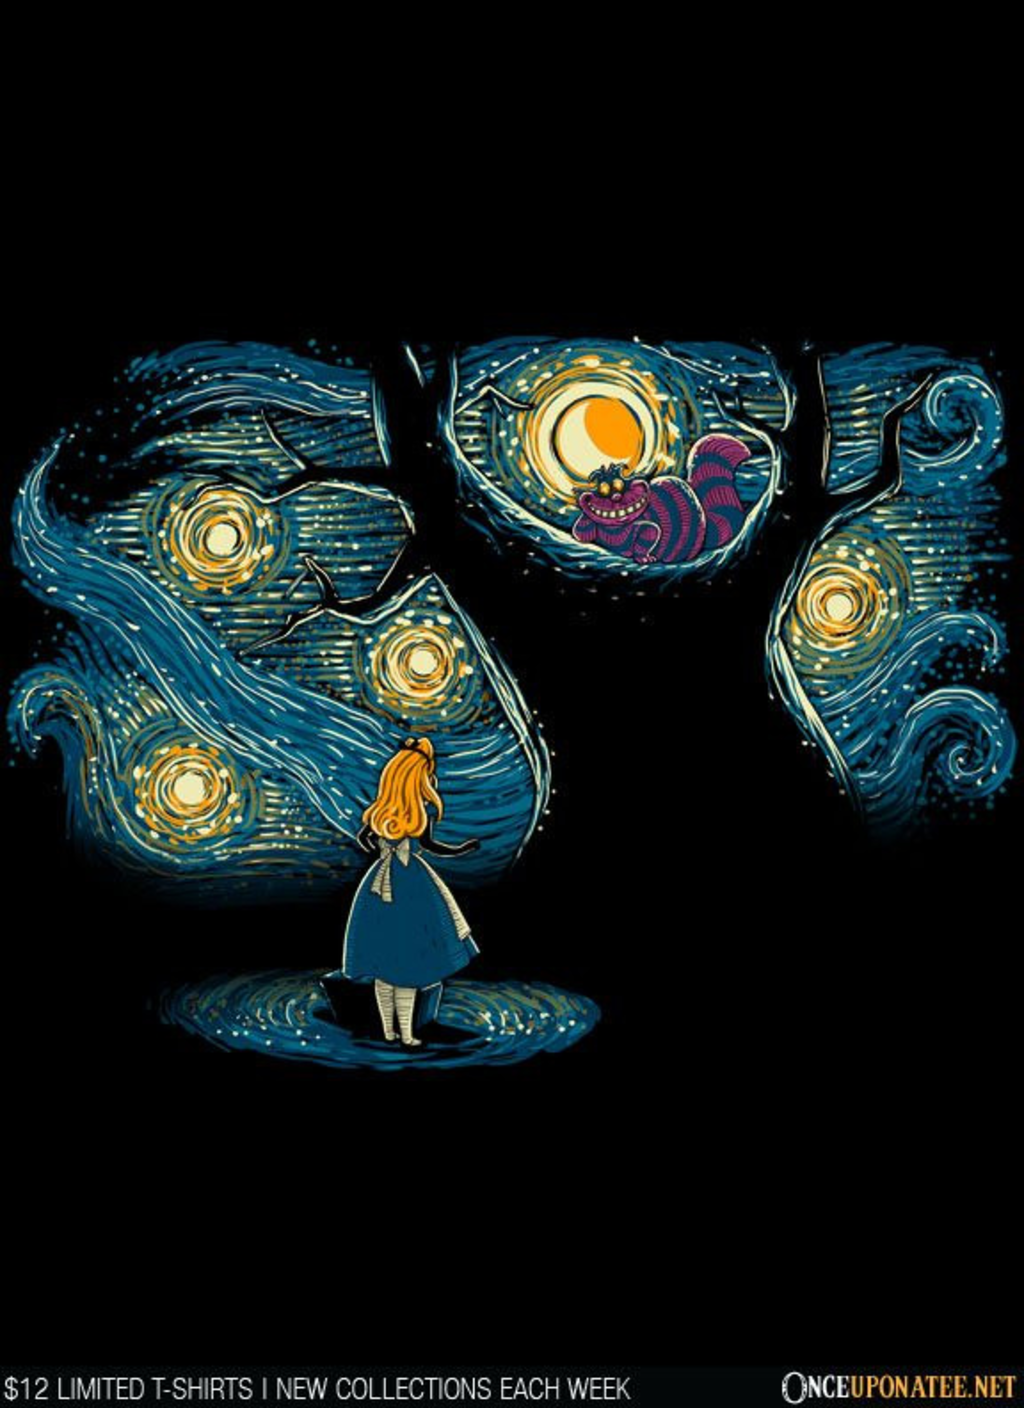 Once Upon a Tee: Starry Wonderland